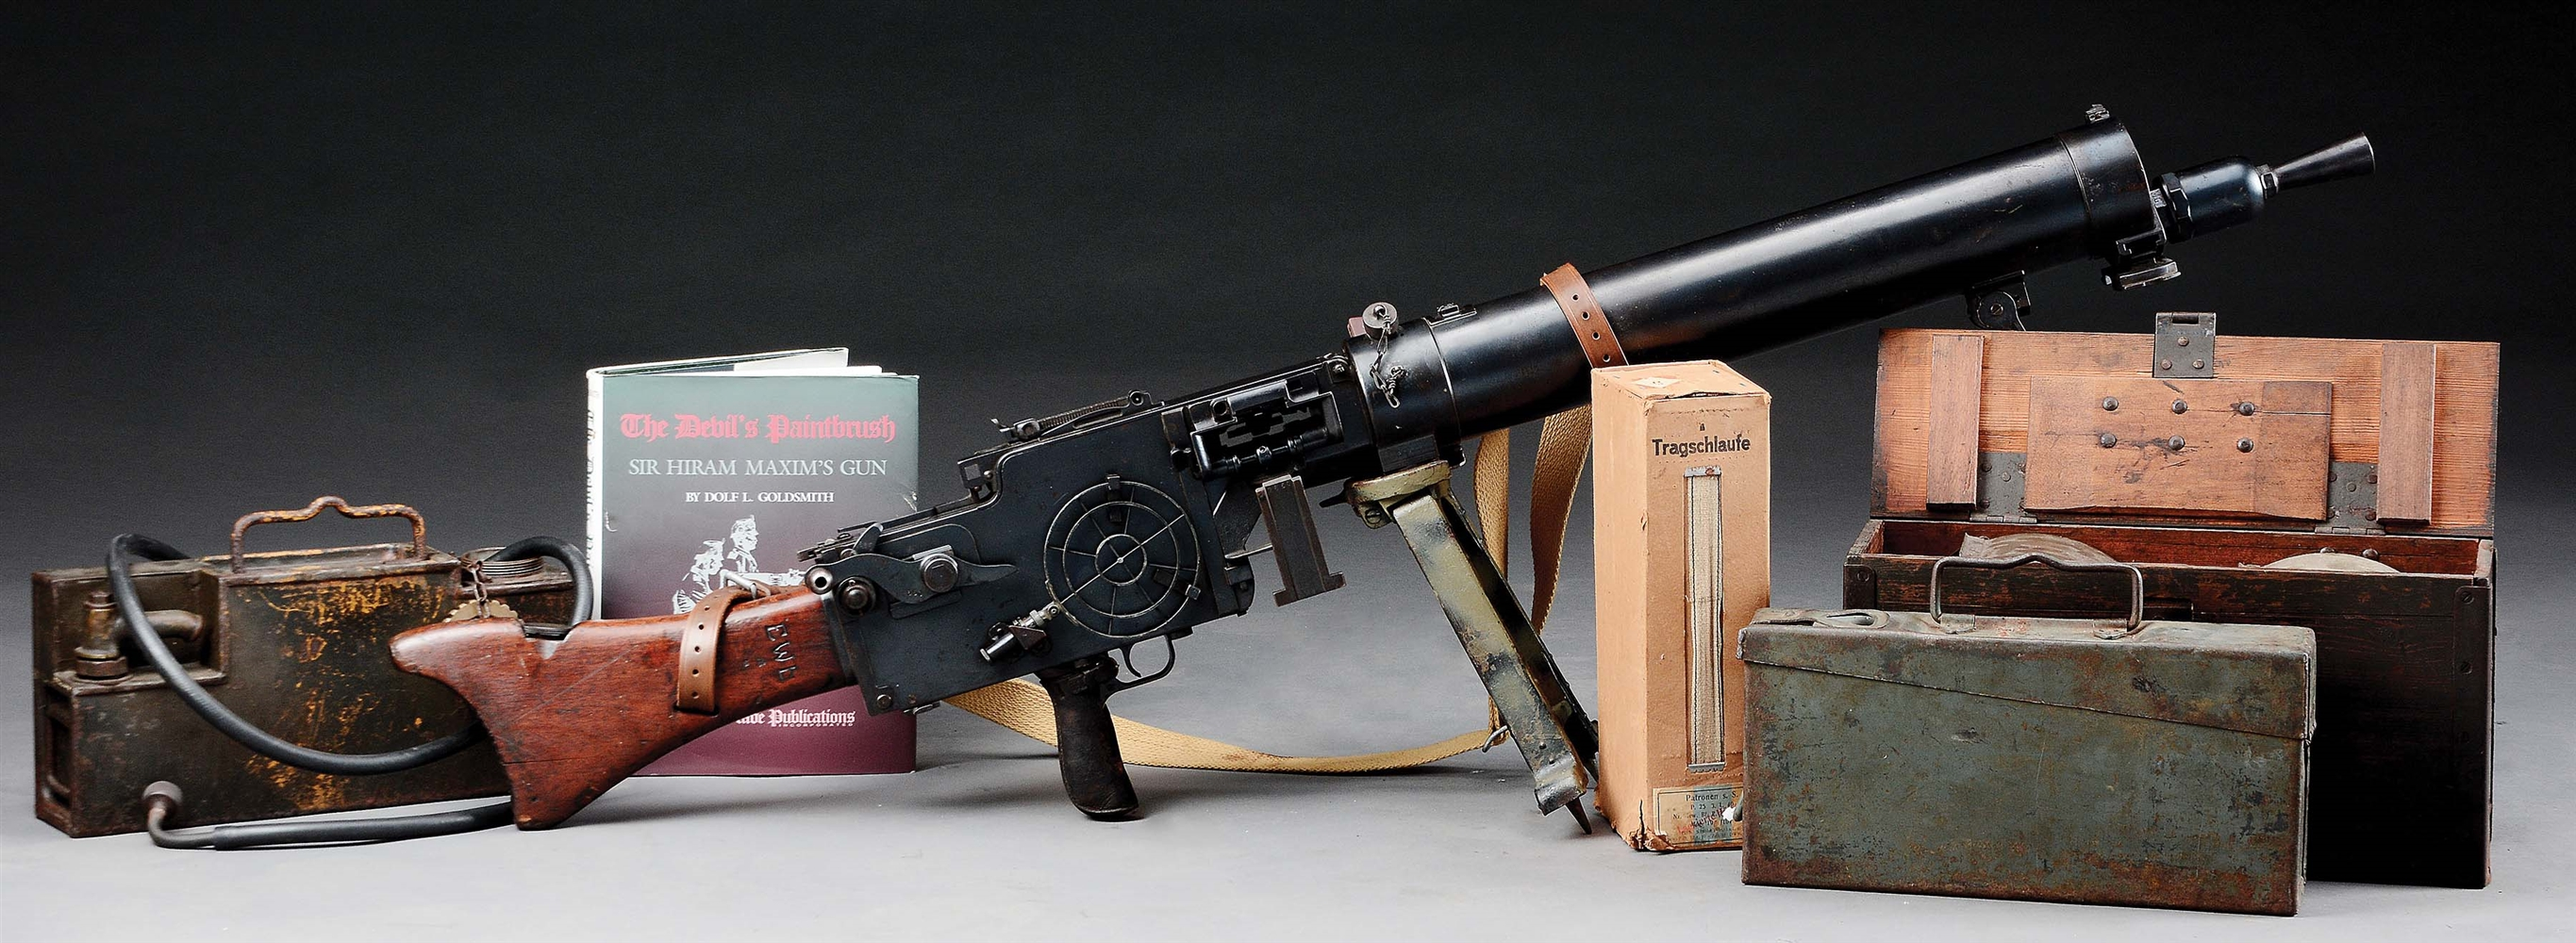 (N) FANTASTIC AND EXTRAORDINARILY RARE GERMAN WW1 MG 08/15 MAXIM MACHINE GUN RETROFITTED DURING WEIMAR ERA WITH SPECIAL FEED BLOCK EQUIPPED TO MG 34 OR CLOTH BELTS (CURIO AND RELIC)